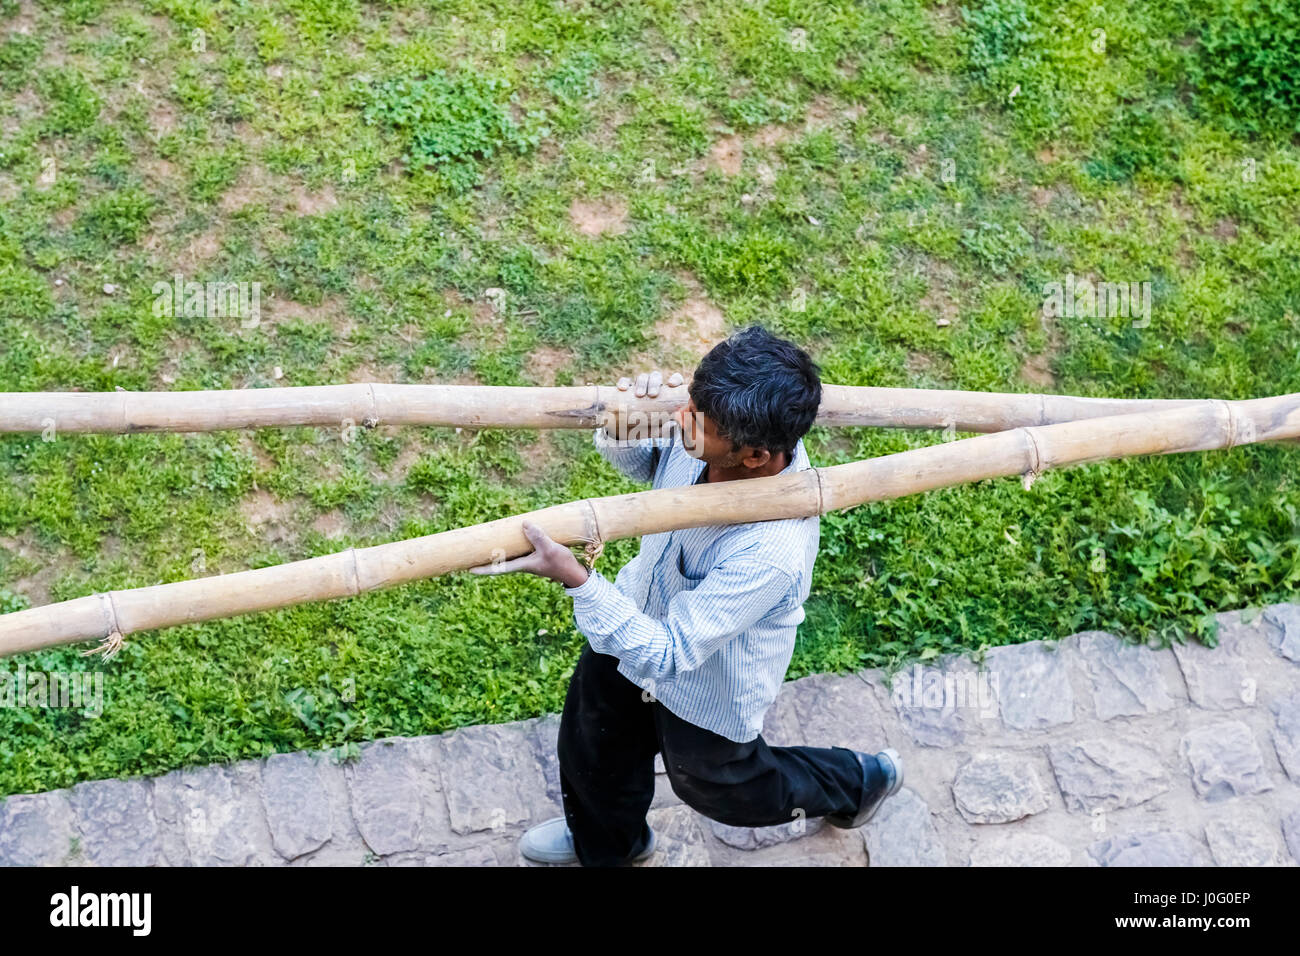 Indian workman carrying large bamboo poles, scaffolding at a construction site, Pragpur, a heritage village, Kagra - Stock Image